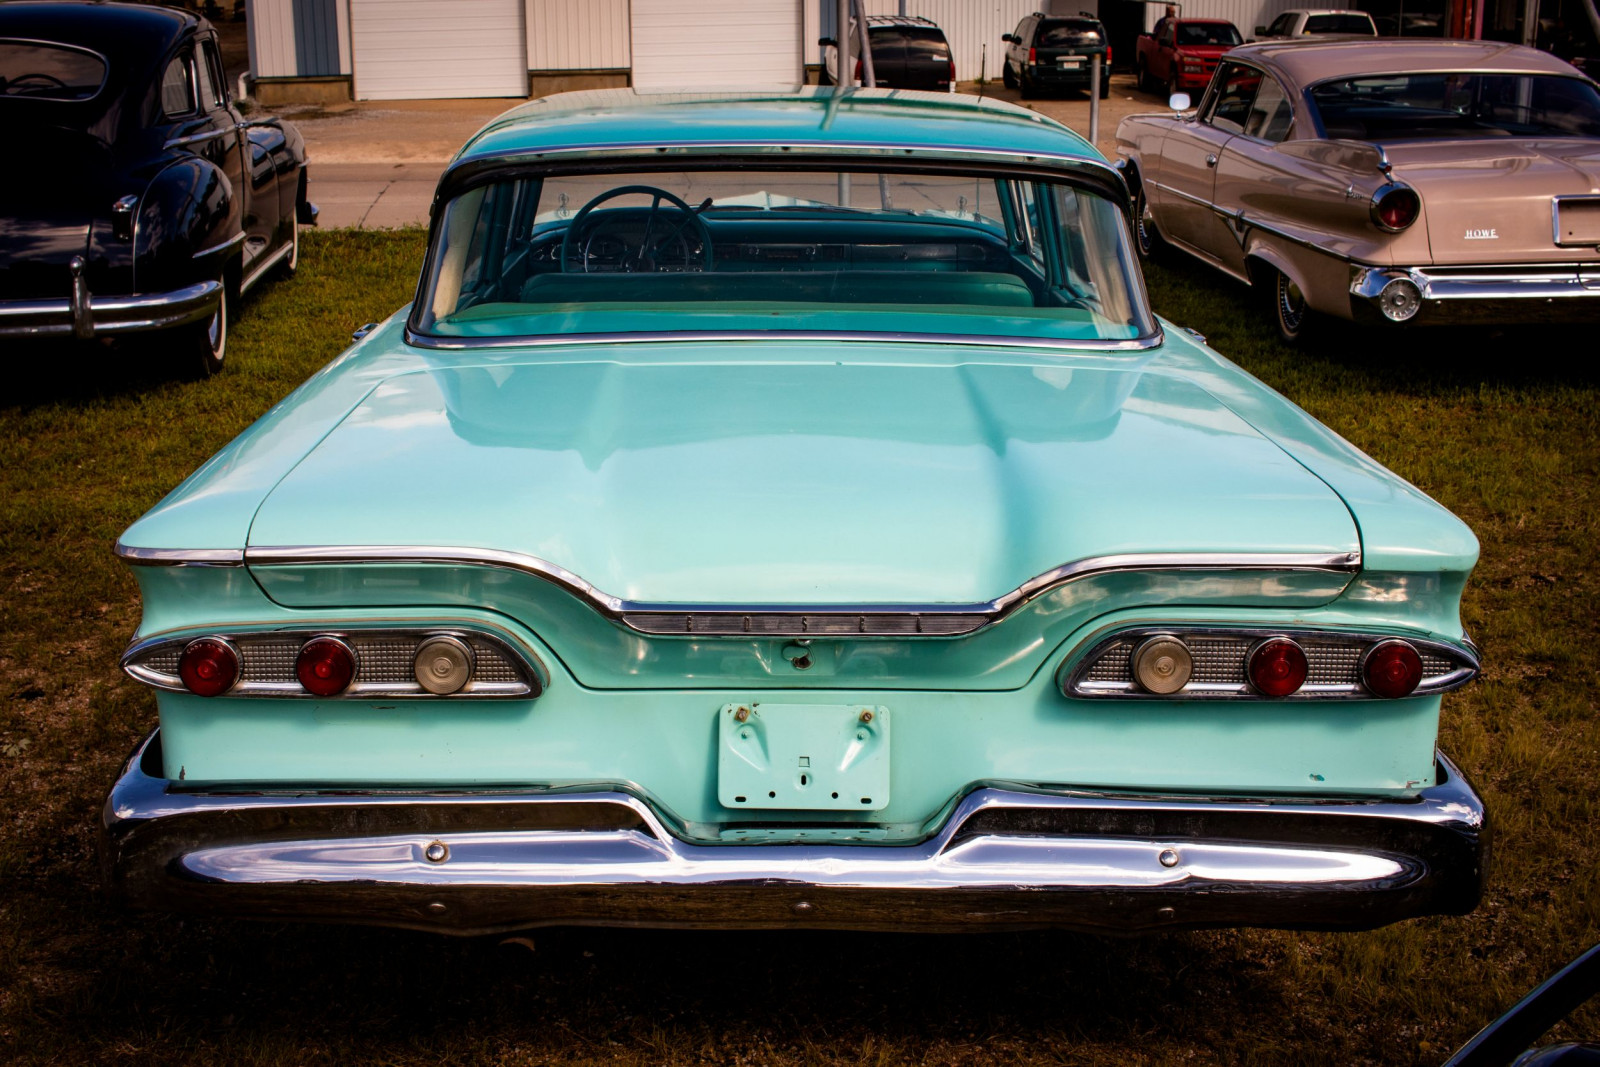 1959 Edsel Corsair 4dr Sedan - Image 6